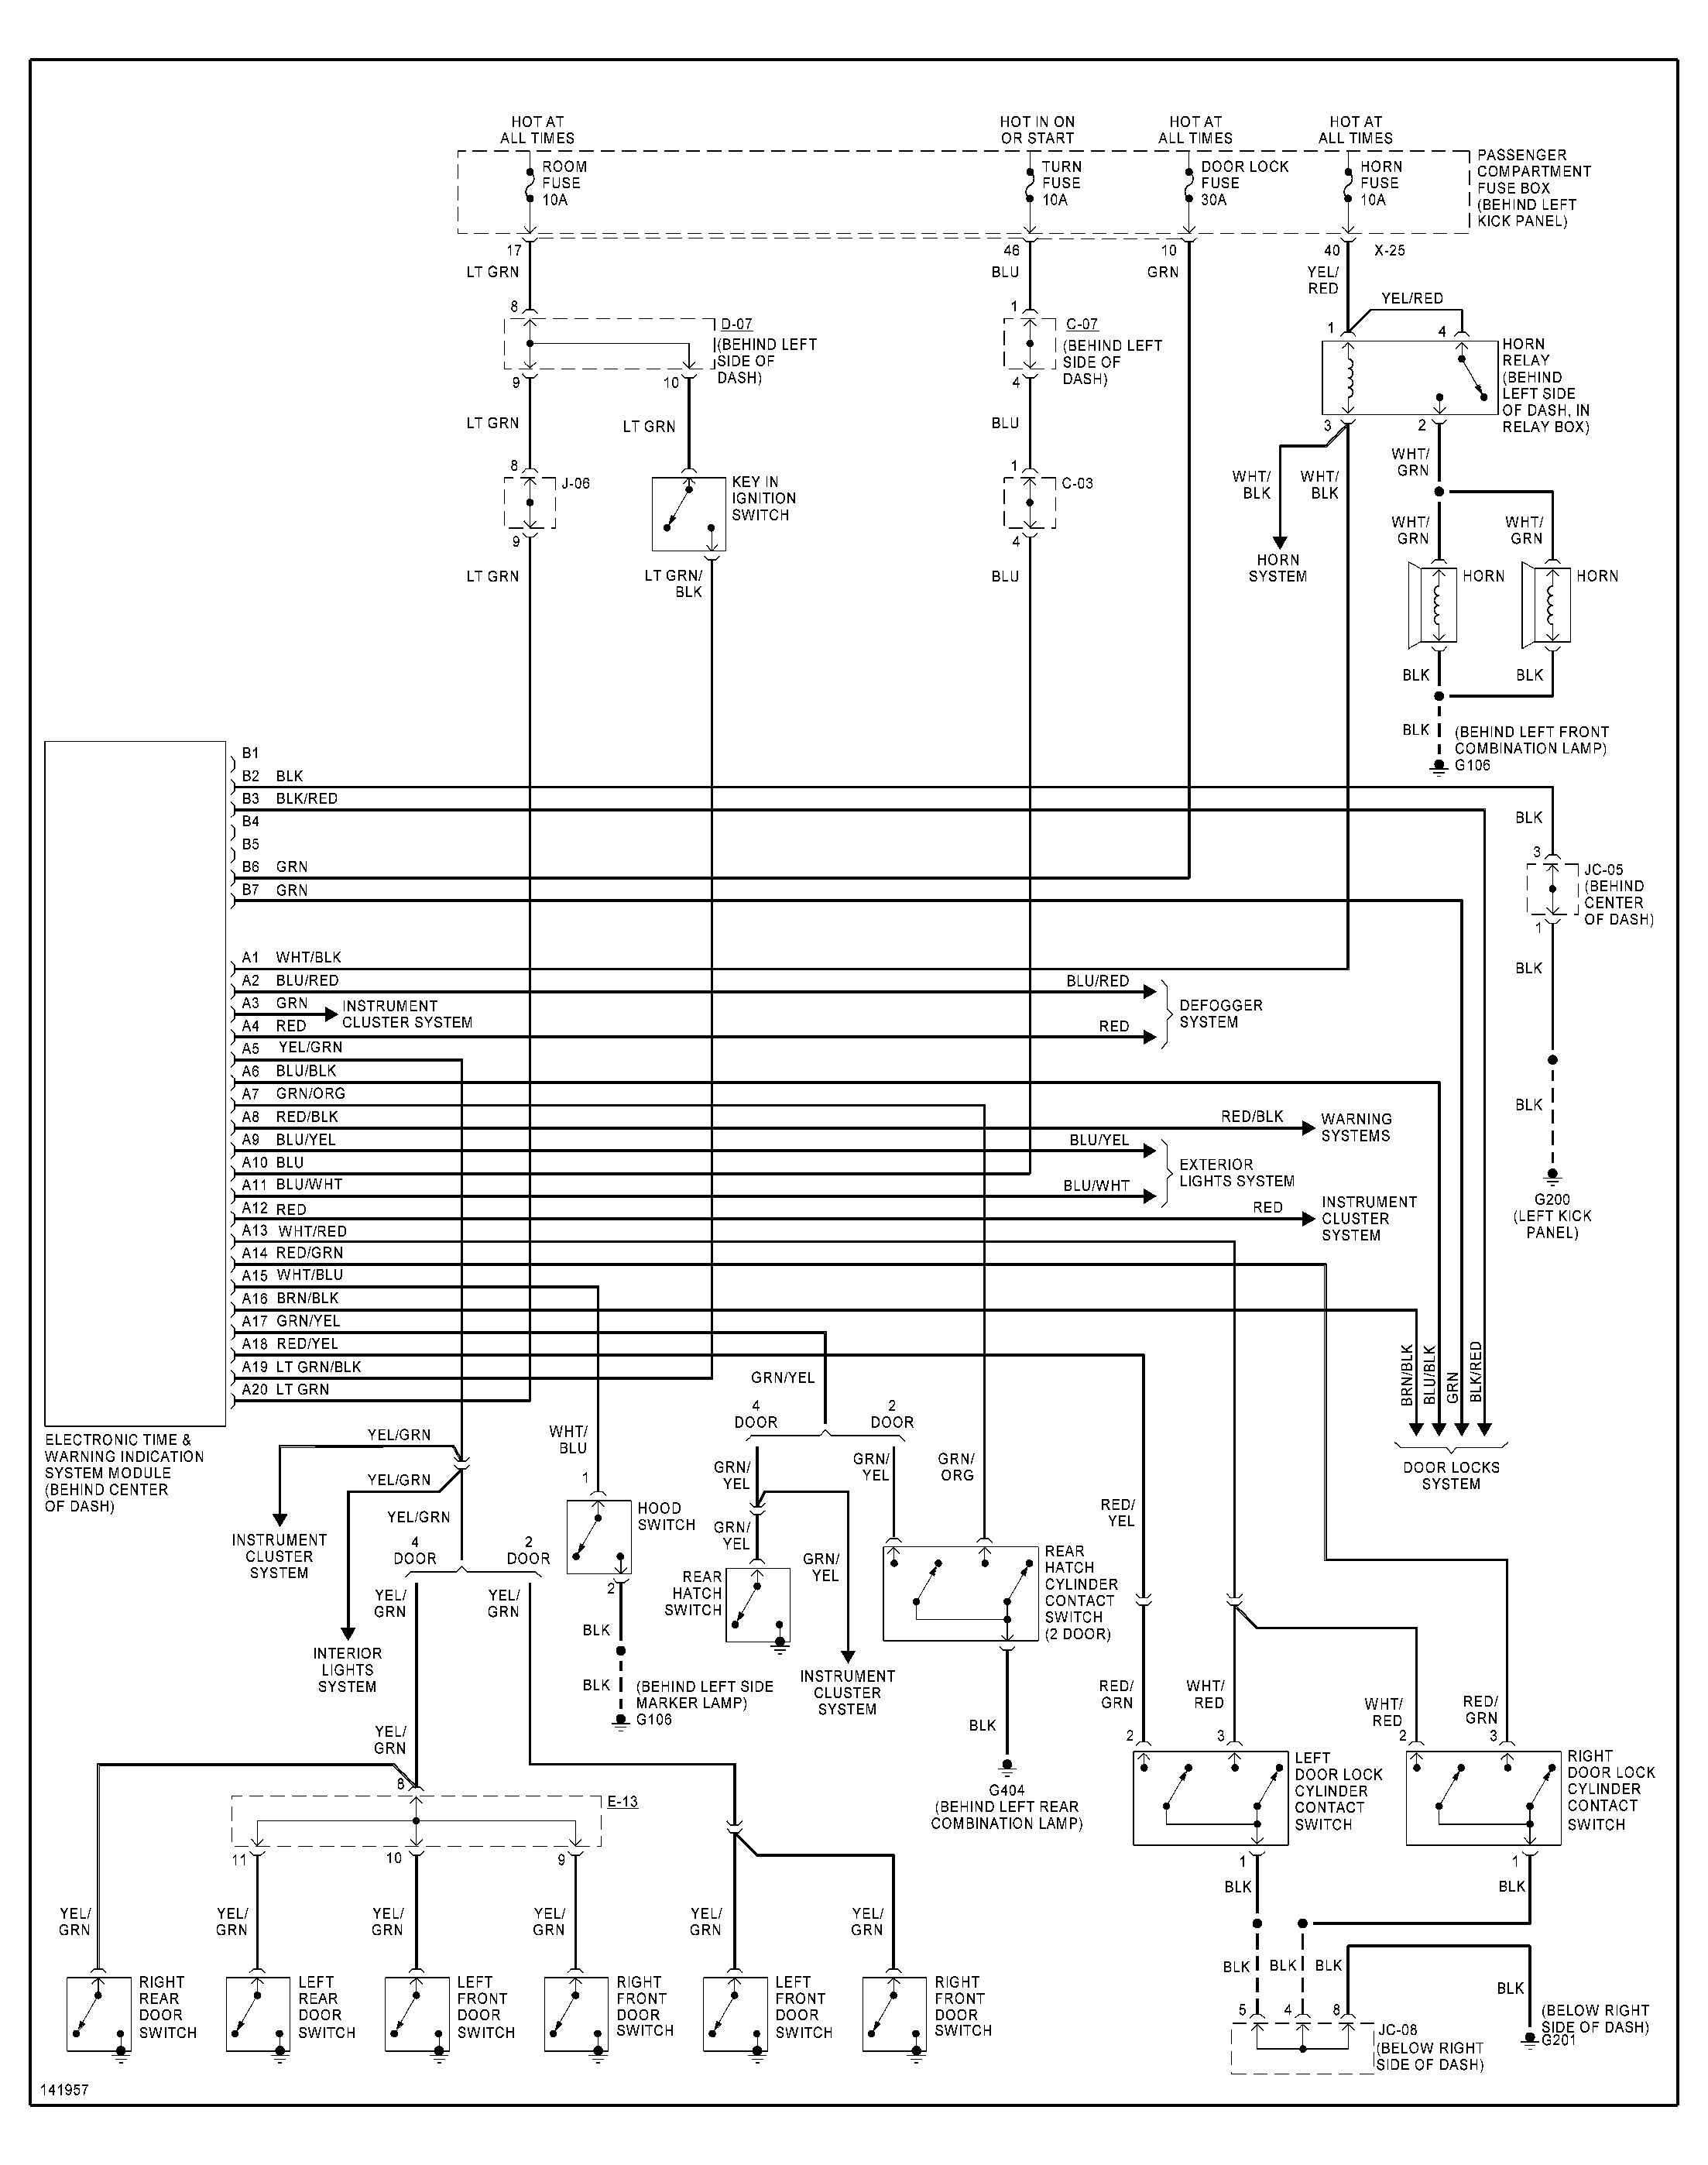 2001 Kium Sportage Engine Diagram